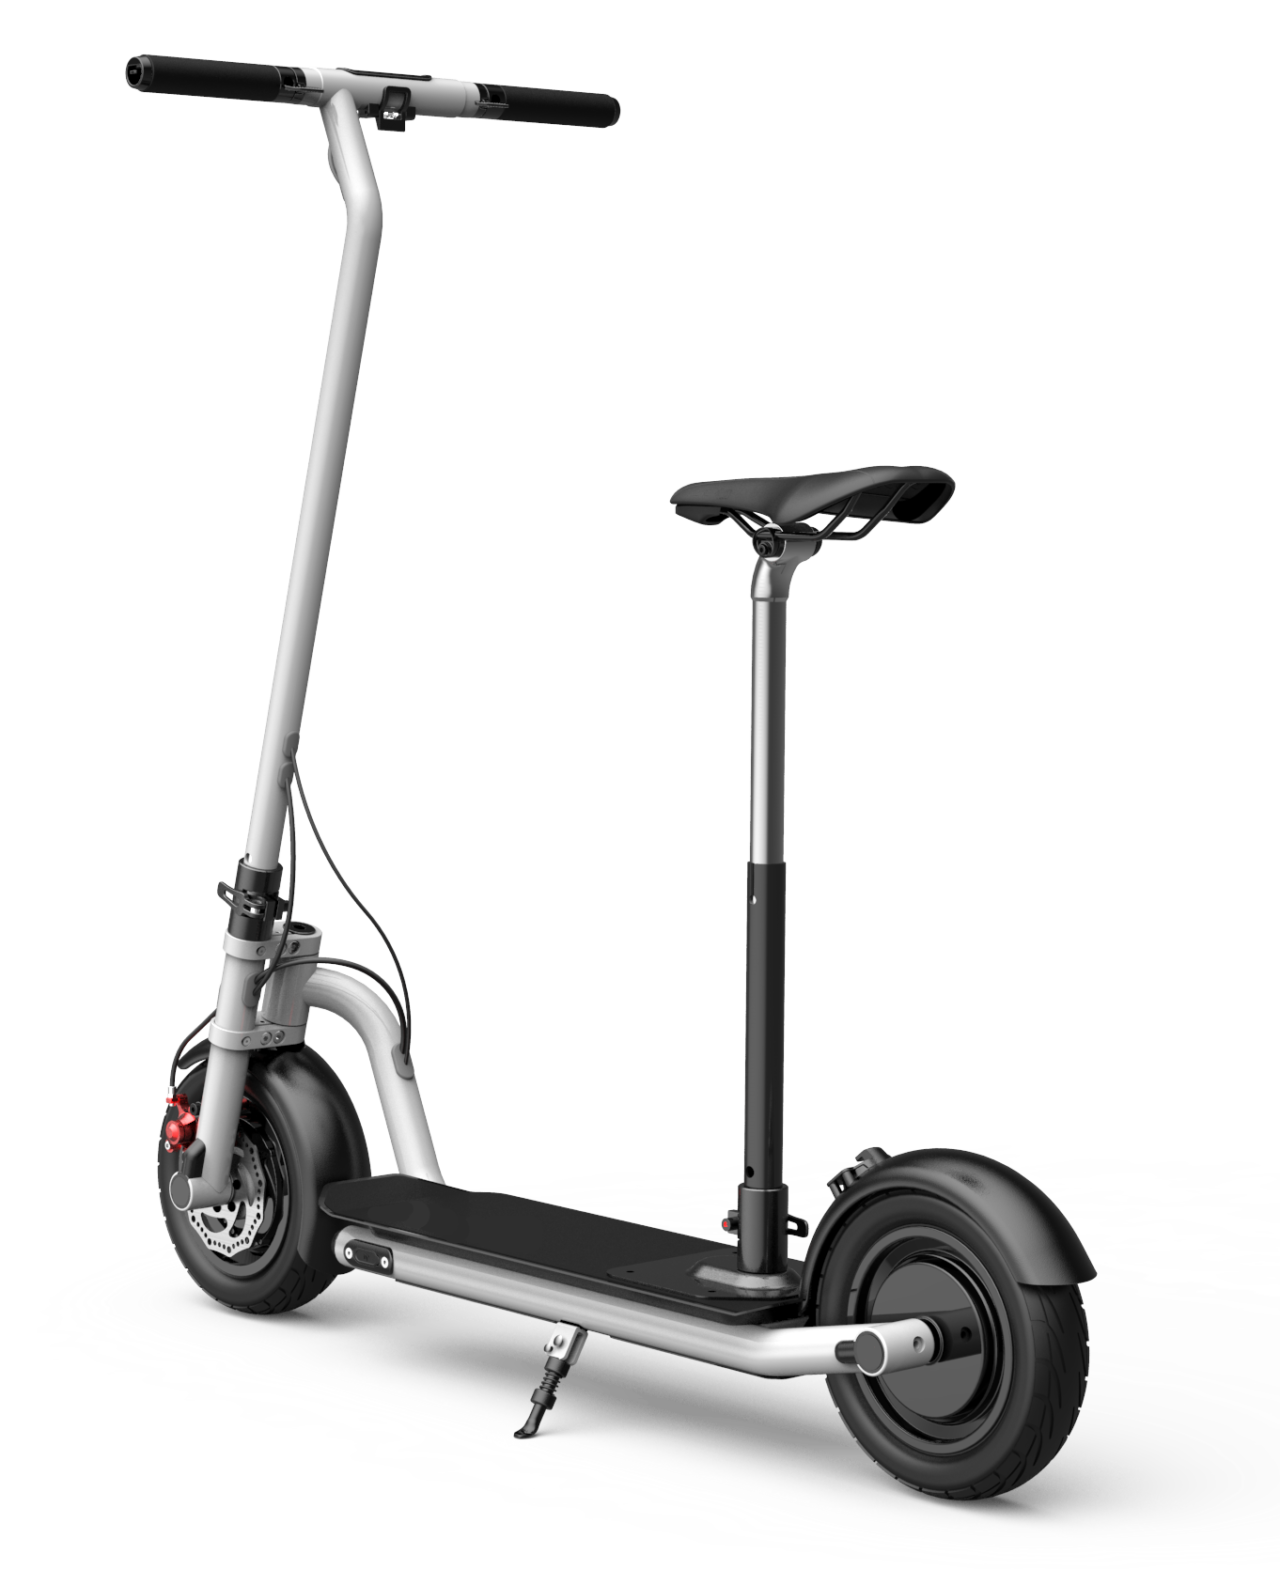 electric-scooter_seat-1280x1585.png